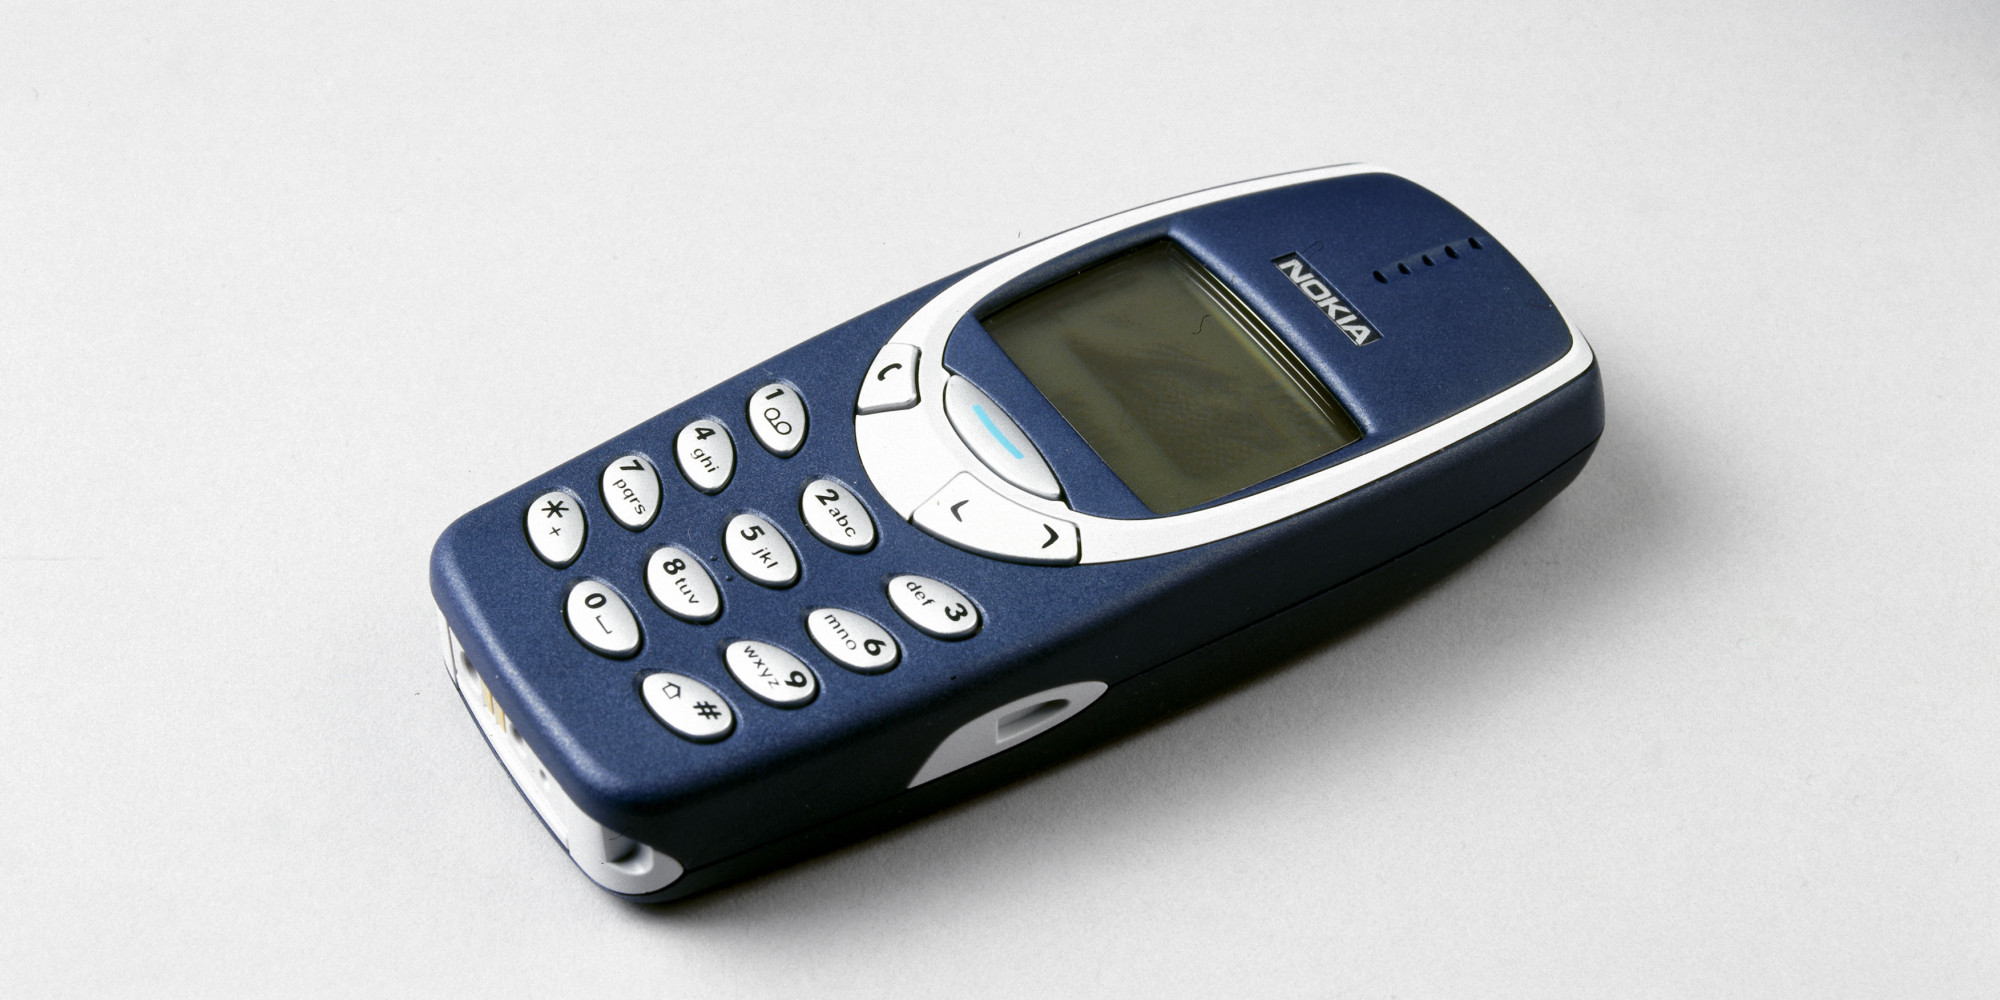 Modojo | Nokia 3310 Re-launch On The Way According To Leak